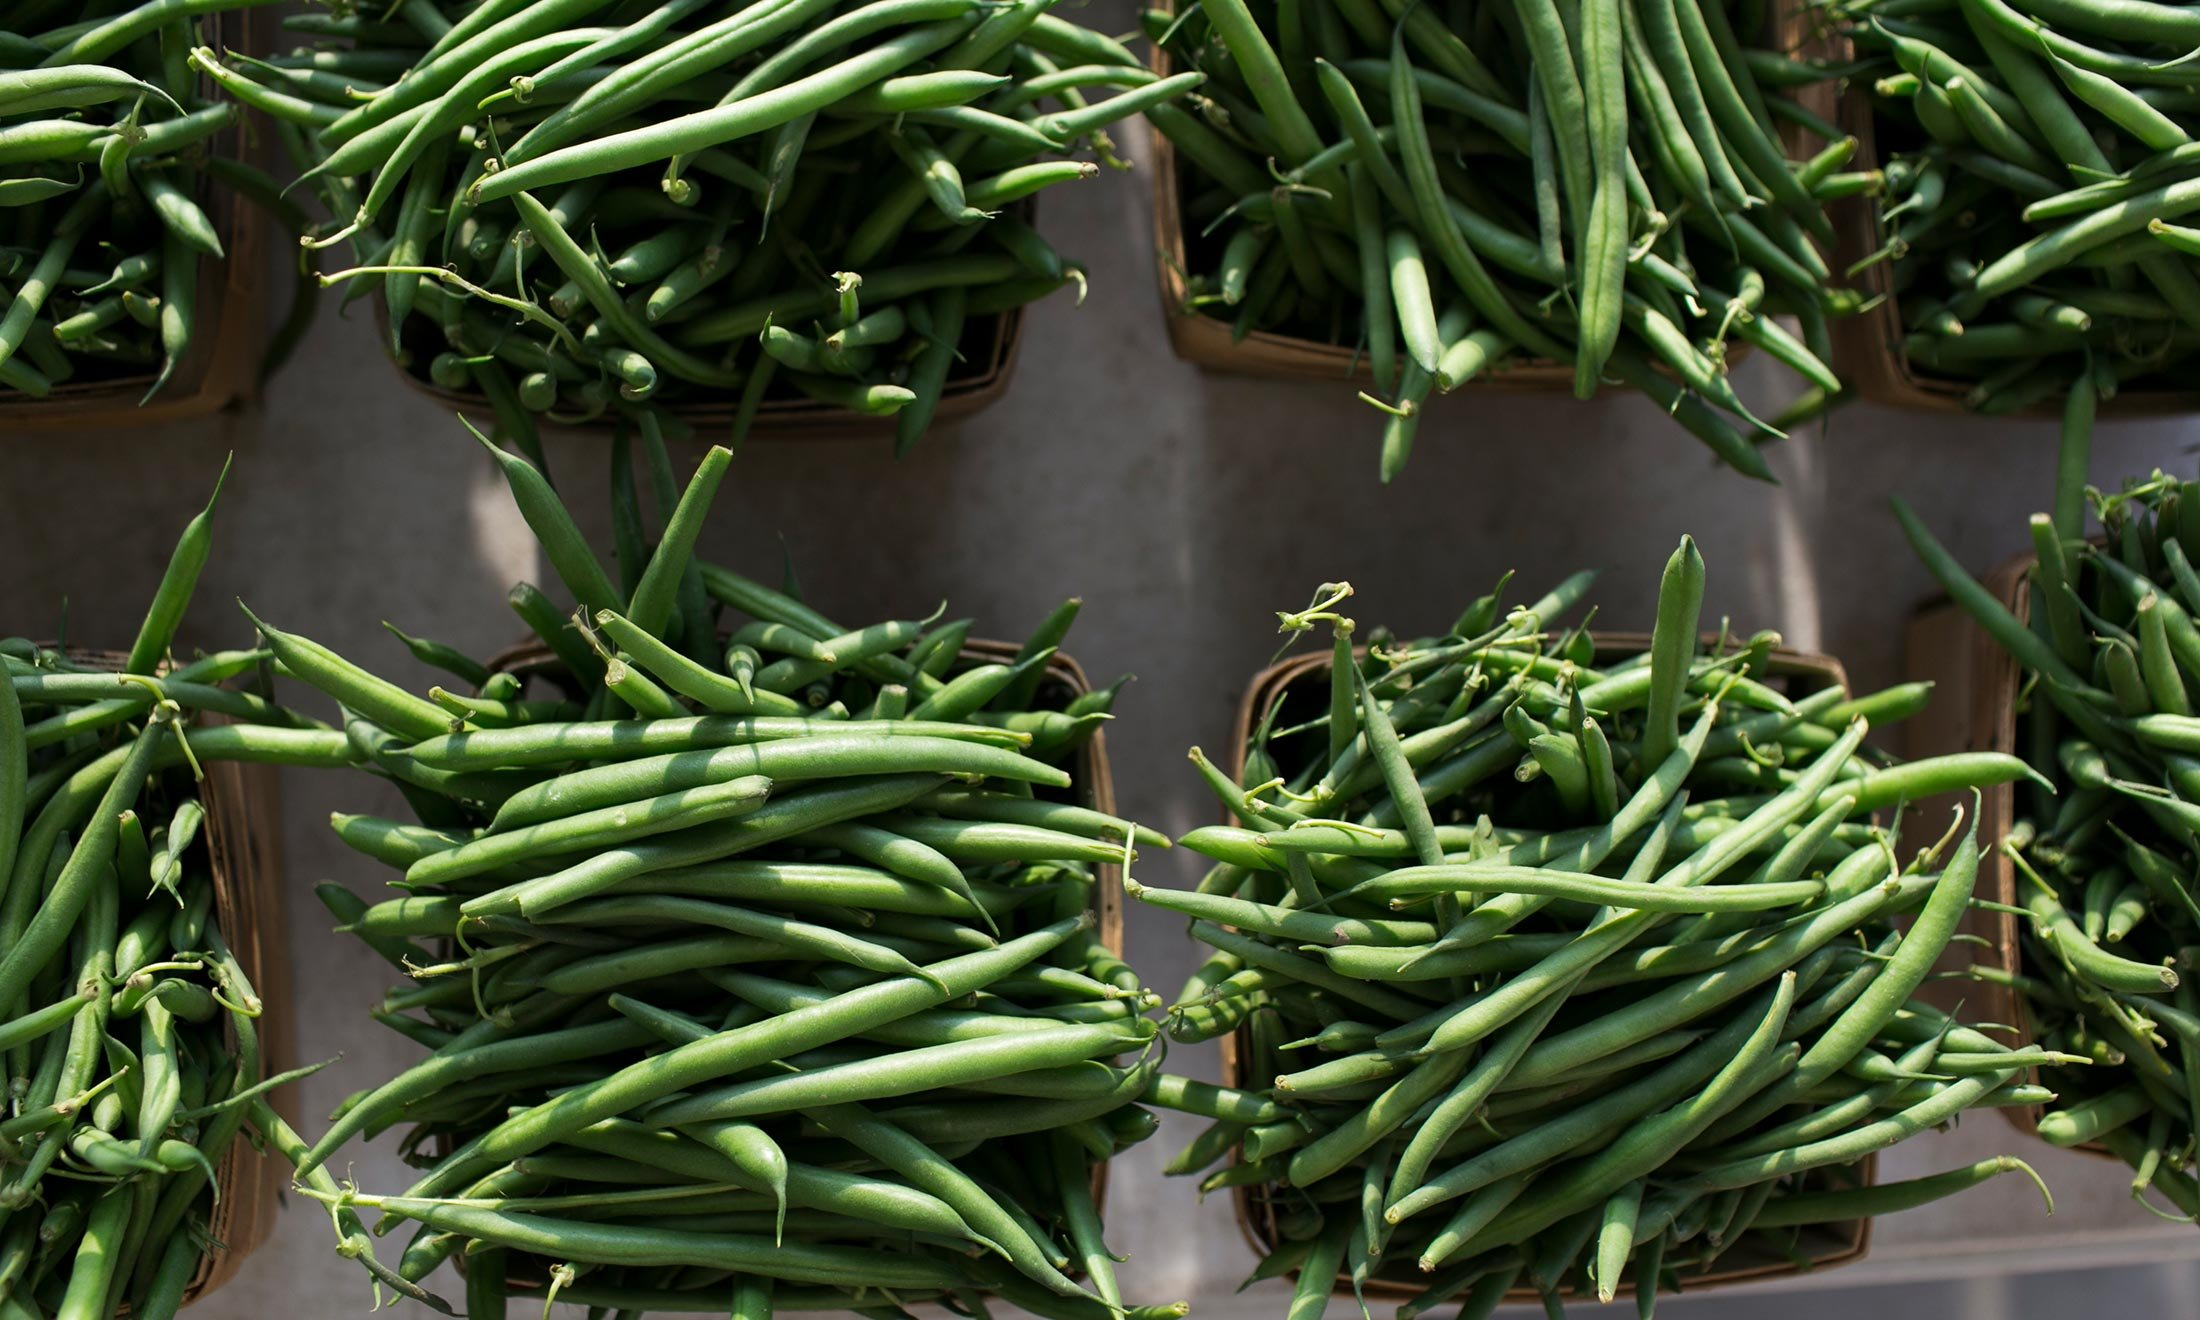 Freshly picked string beans at the Royal Oak Farmers Market